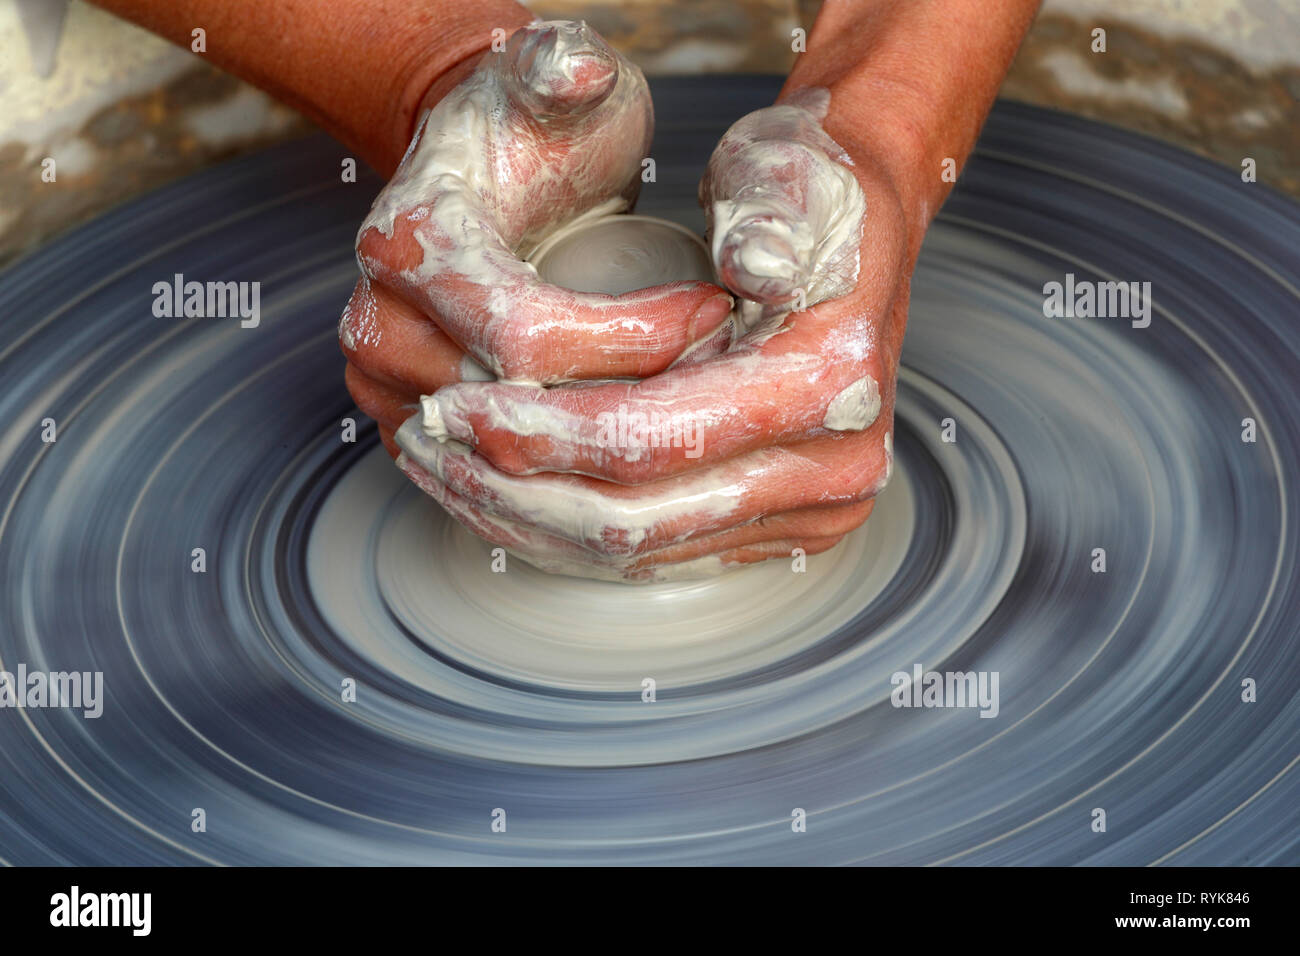 Old Domancy craft festival. The hands of a potter shaping clay at a potters wheel.  France. - Stock Image